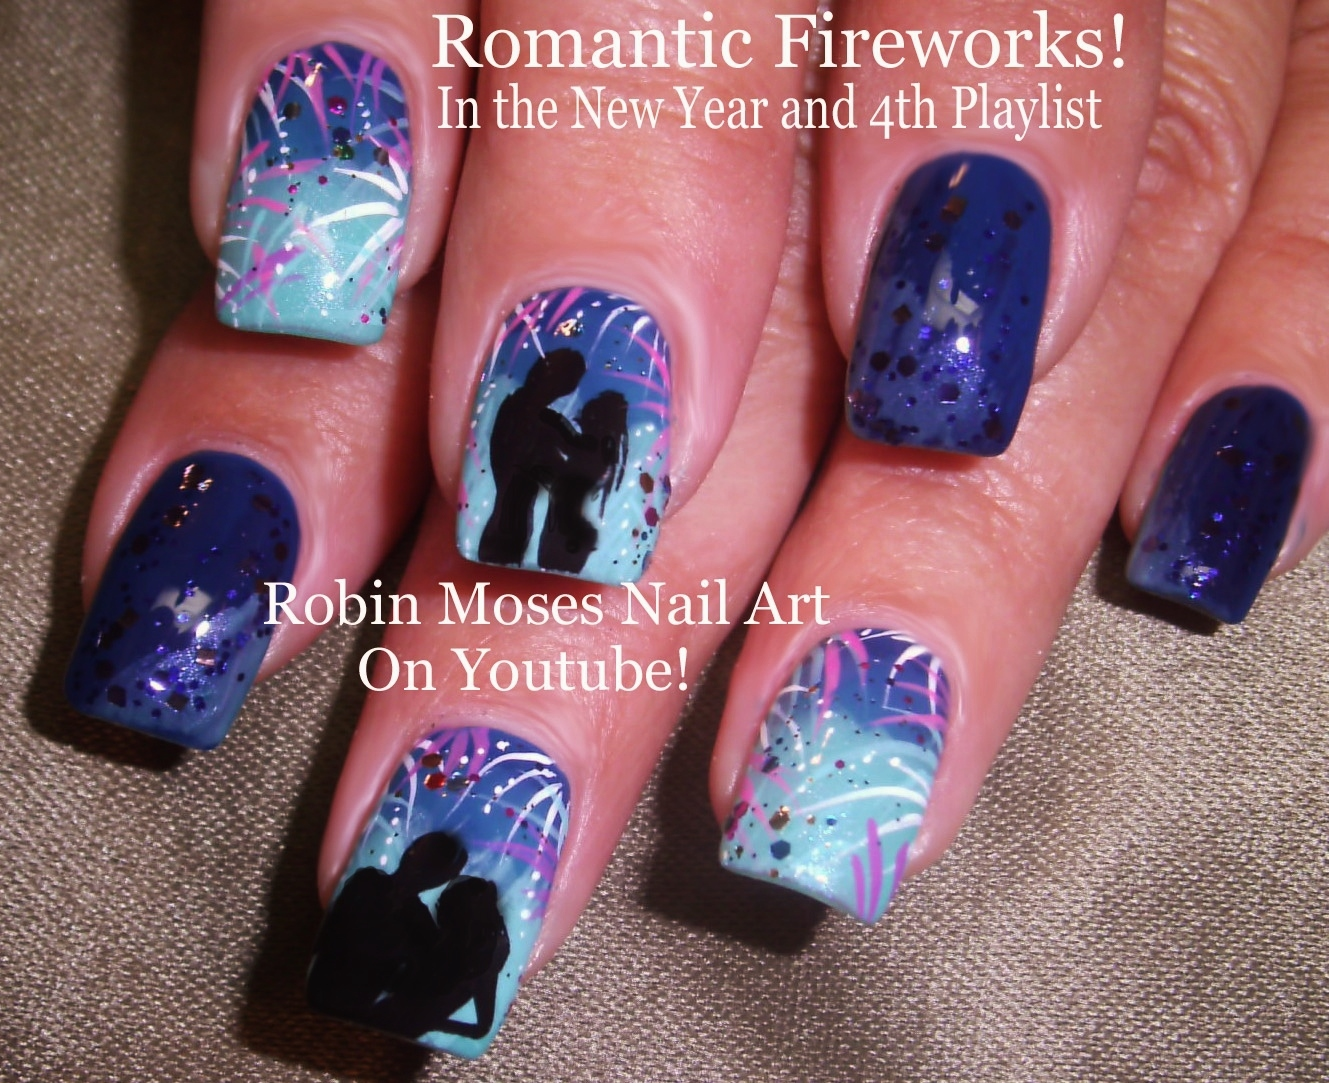 Romantic Firework Nail Art Design Tutorial up for the 4th of july! Have fun  painting!!! - Nail Art By Robin Moses: Romantic Firework Nail Art Design Tutorial